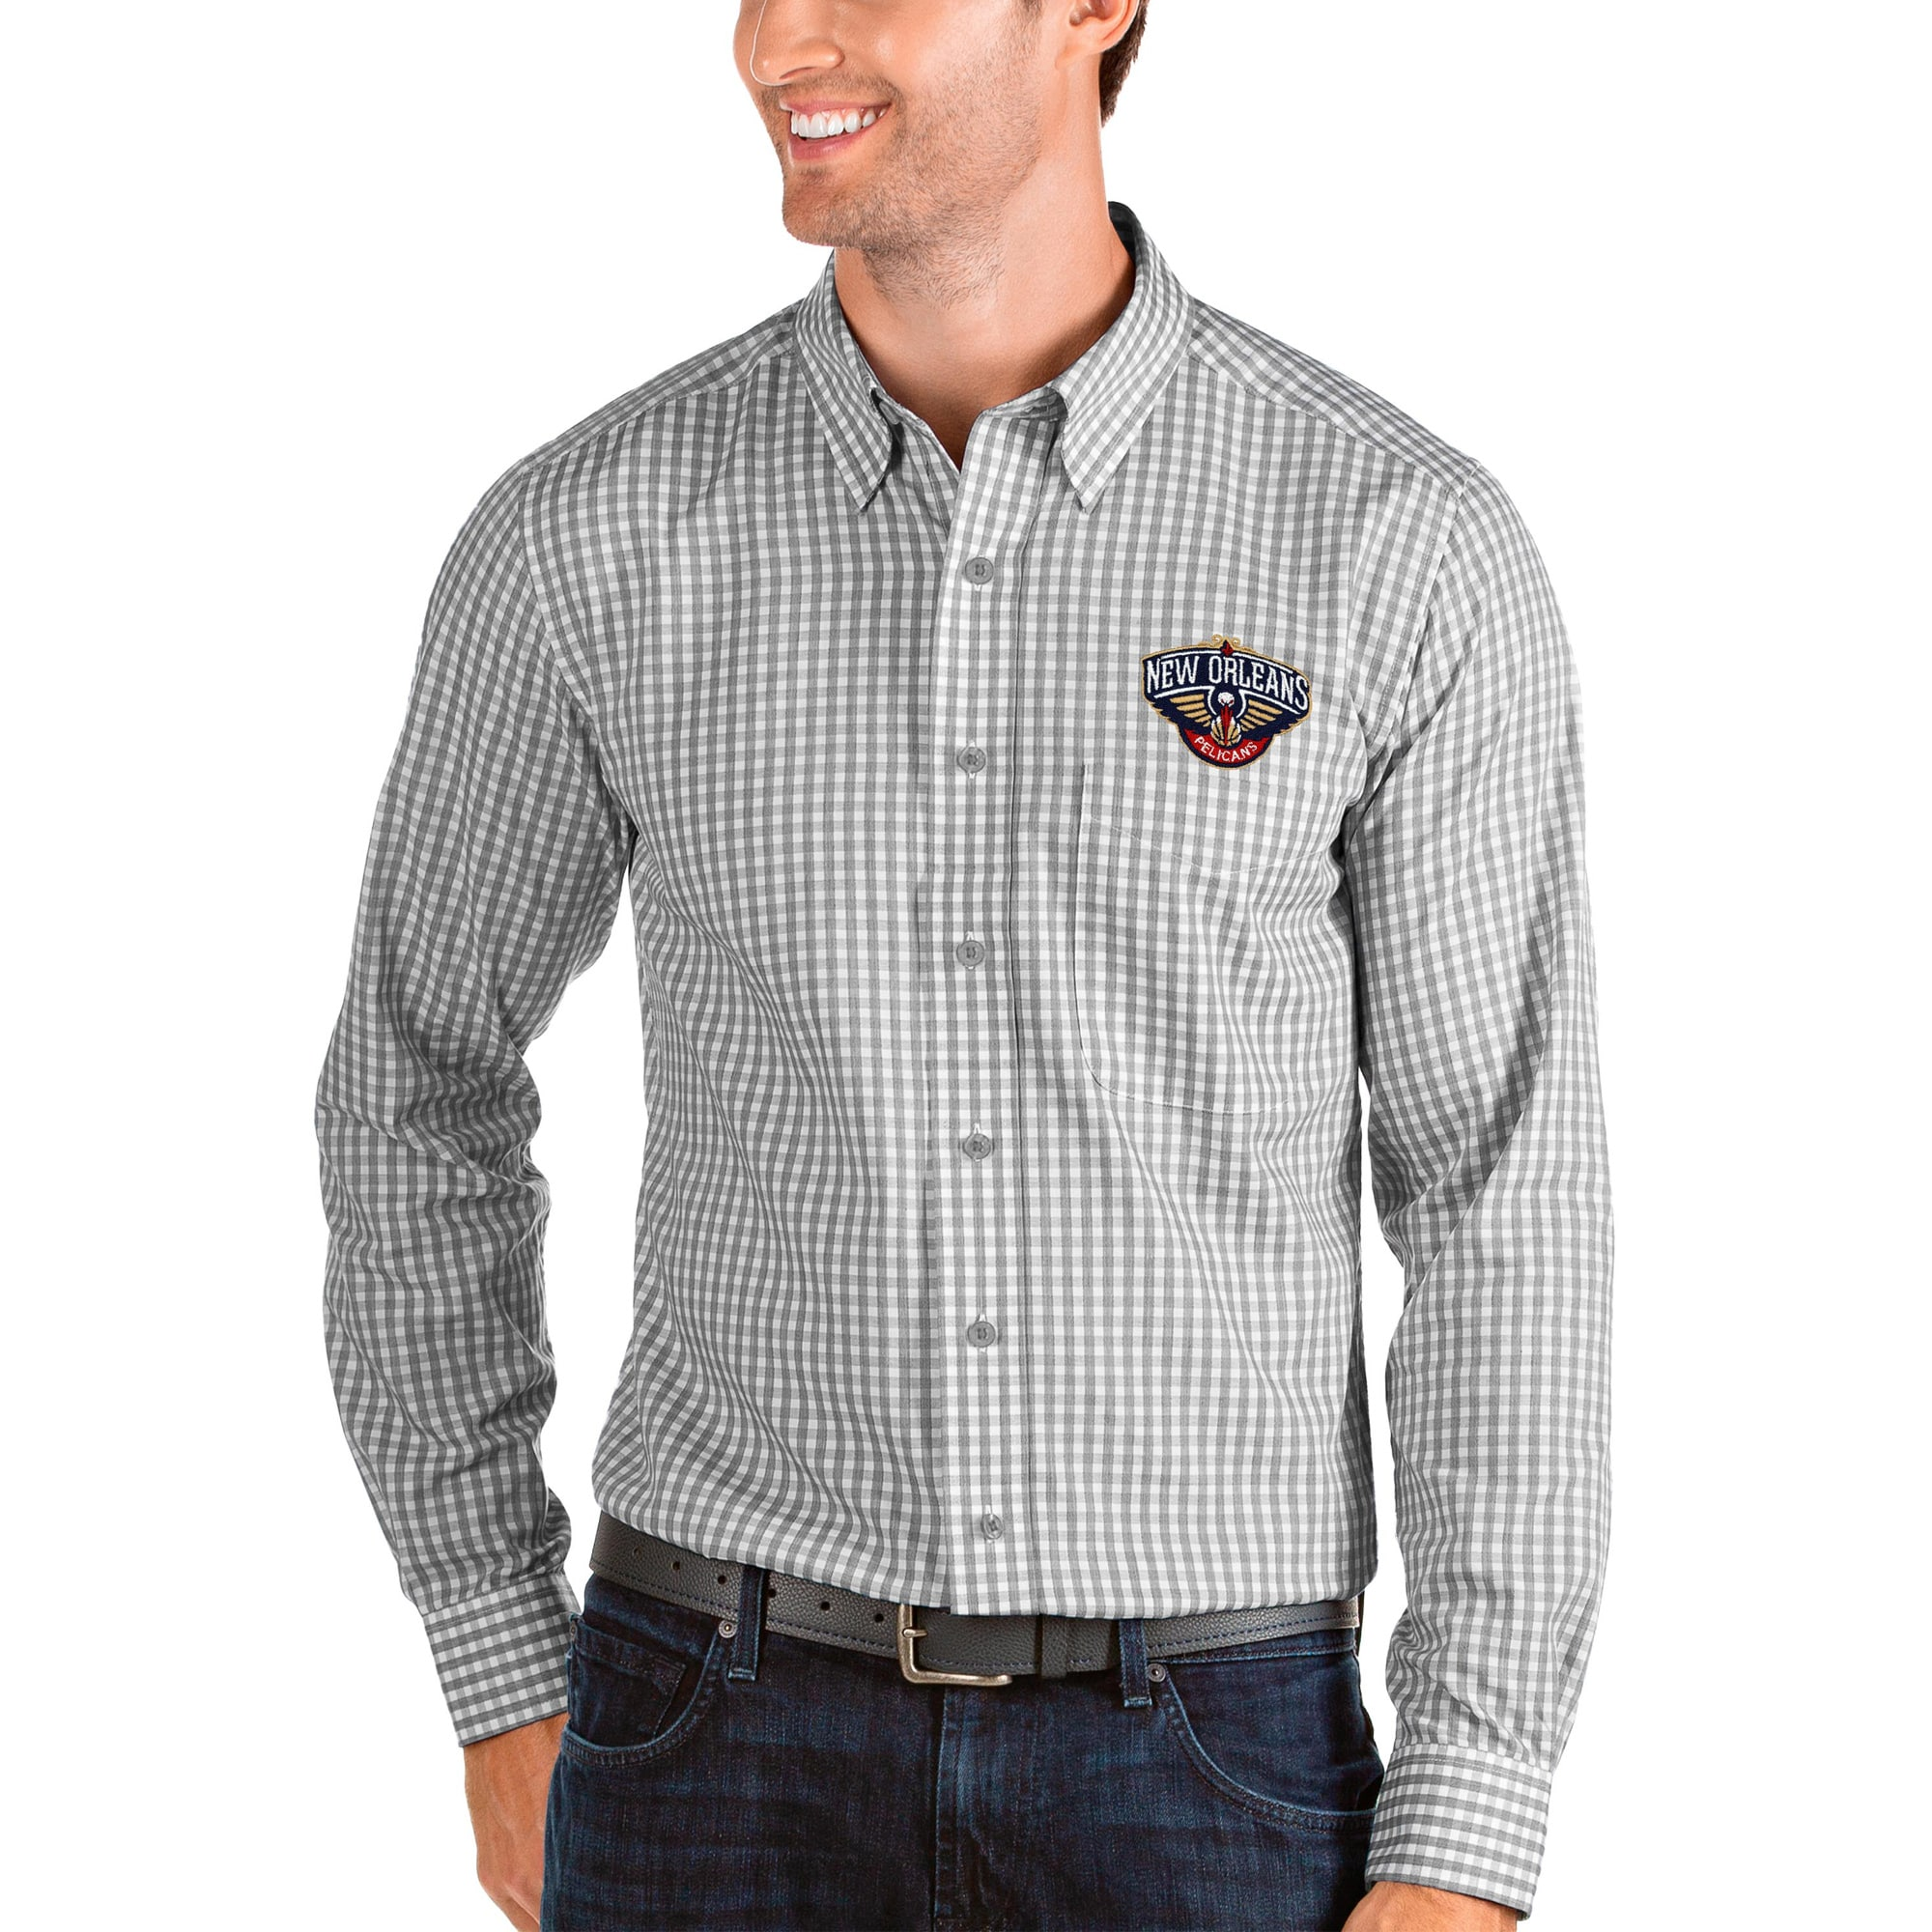 New Orleans Pelicans Antigua Structure Long Sleeve Button-Up Shirt - Charcoal/White